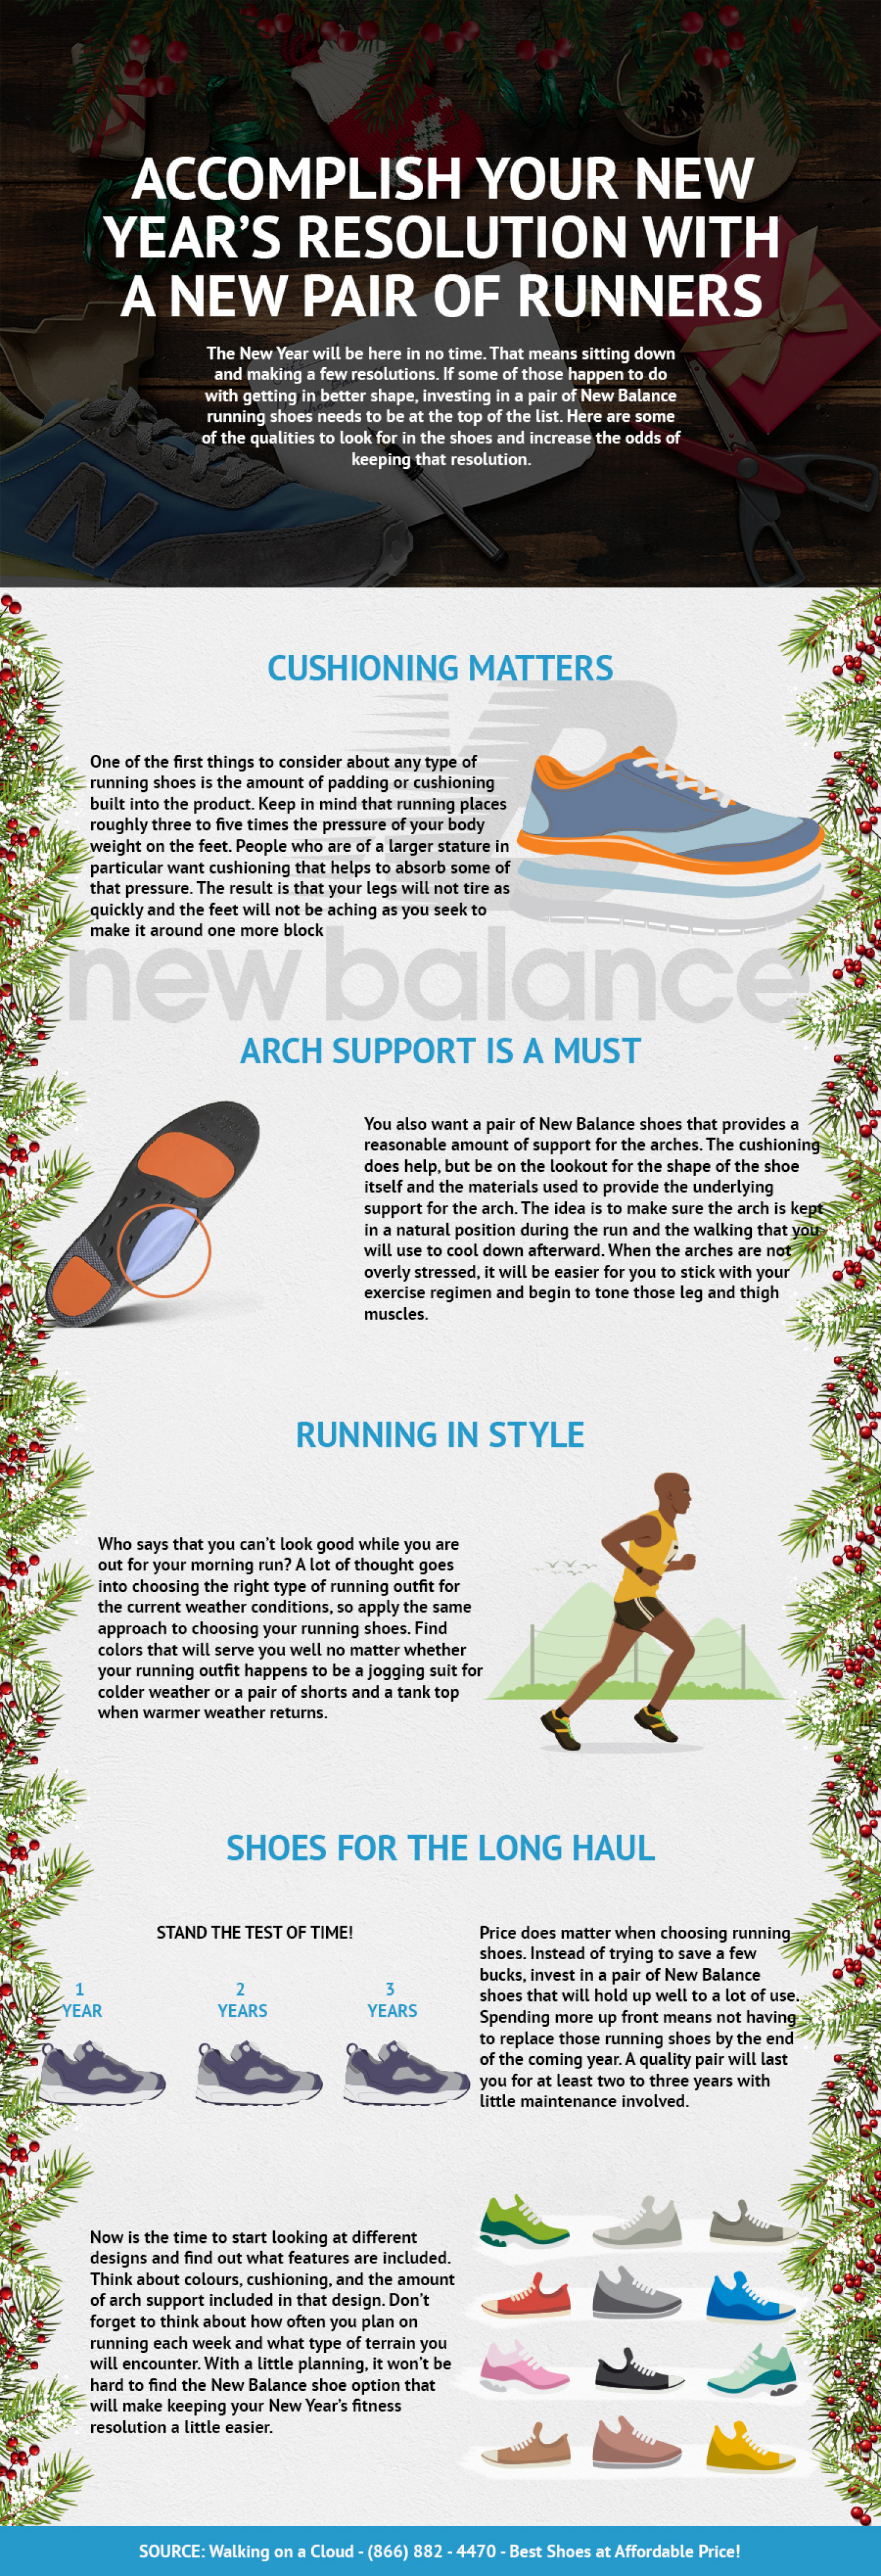 Accomplish Your New Year's Resolution with a New Pair of Runners Infographic